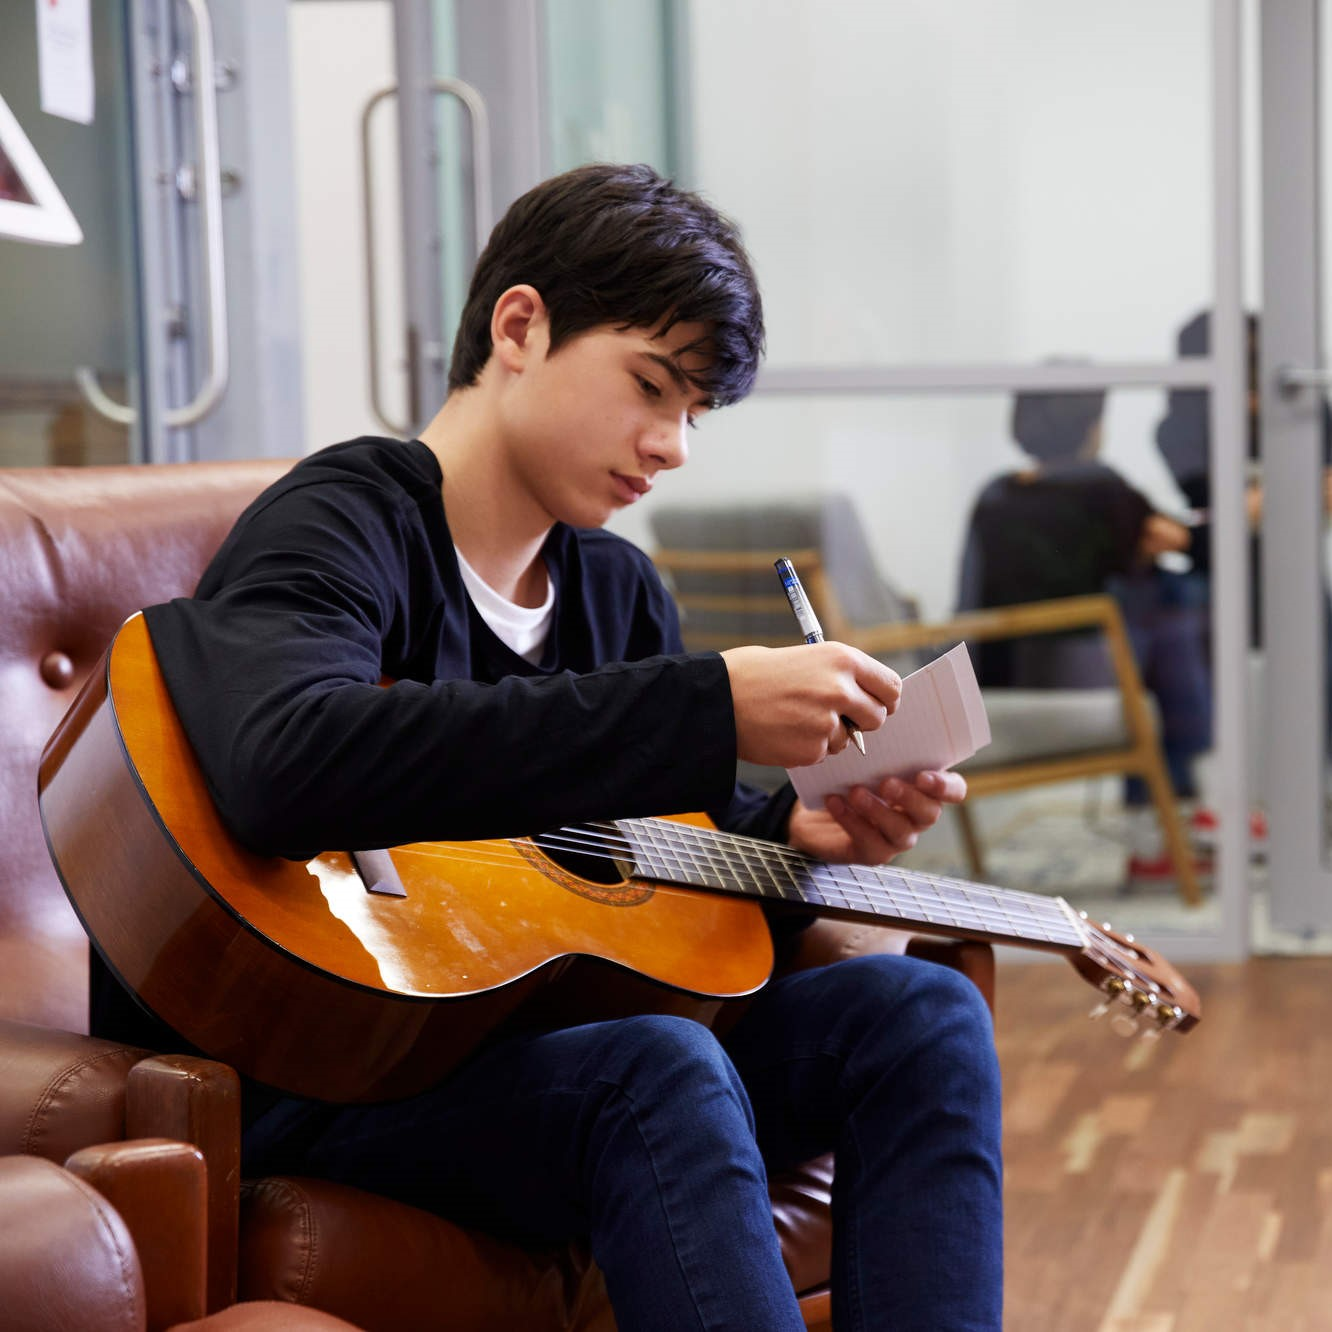 A teenage boy holding a guitar and smiling.